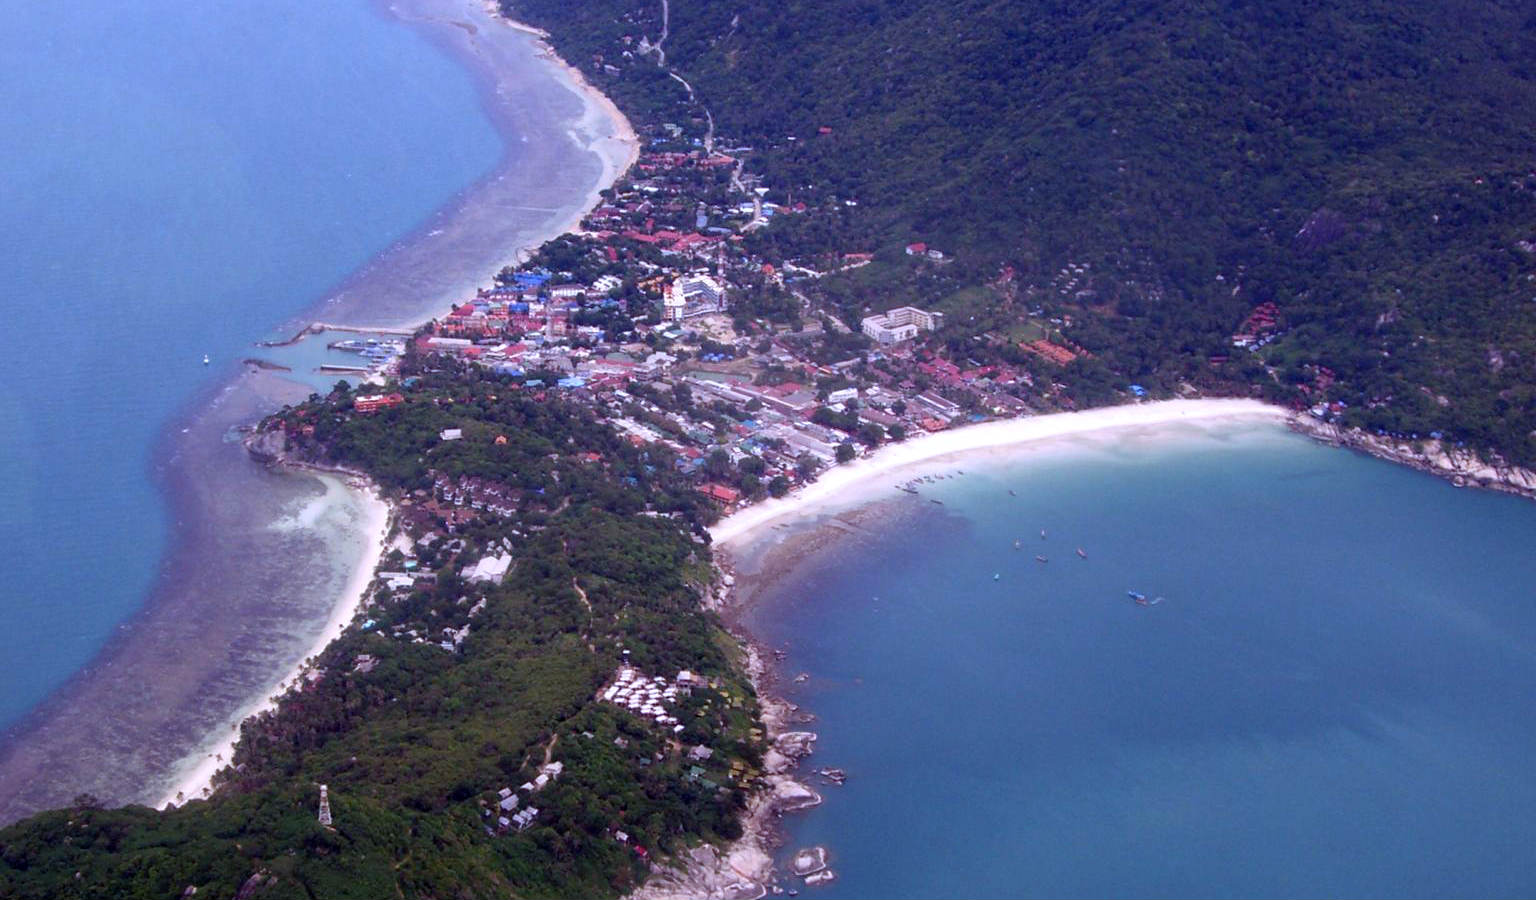 Haad Rin in Koh Phangan, Thailand from the air